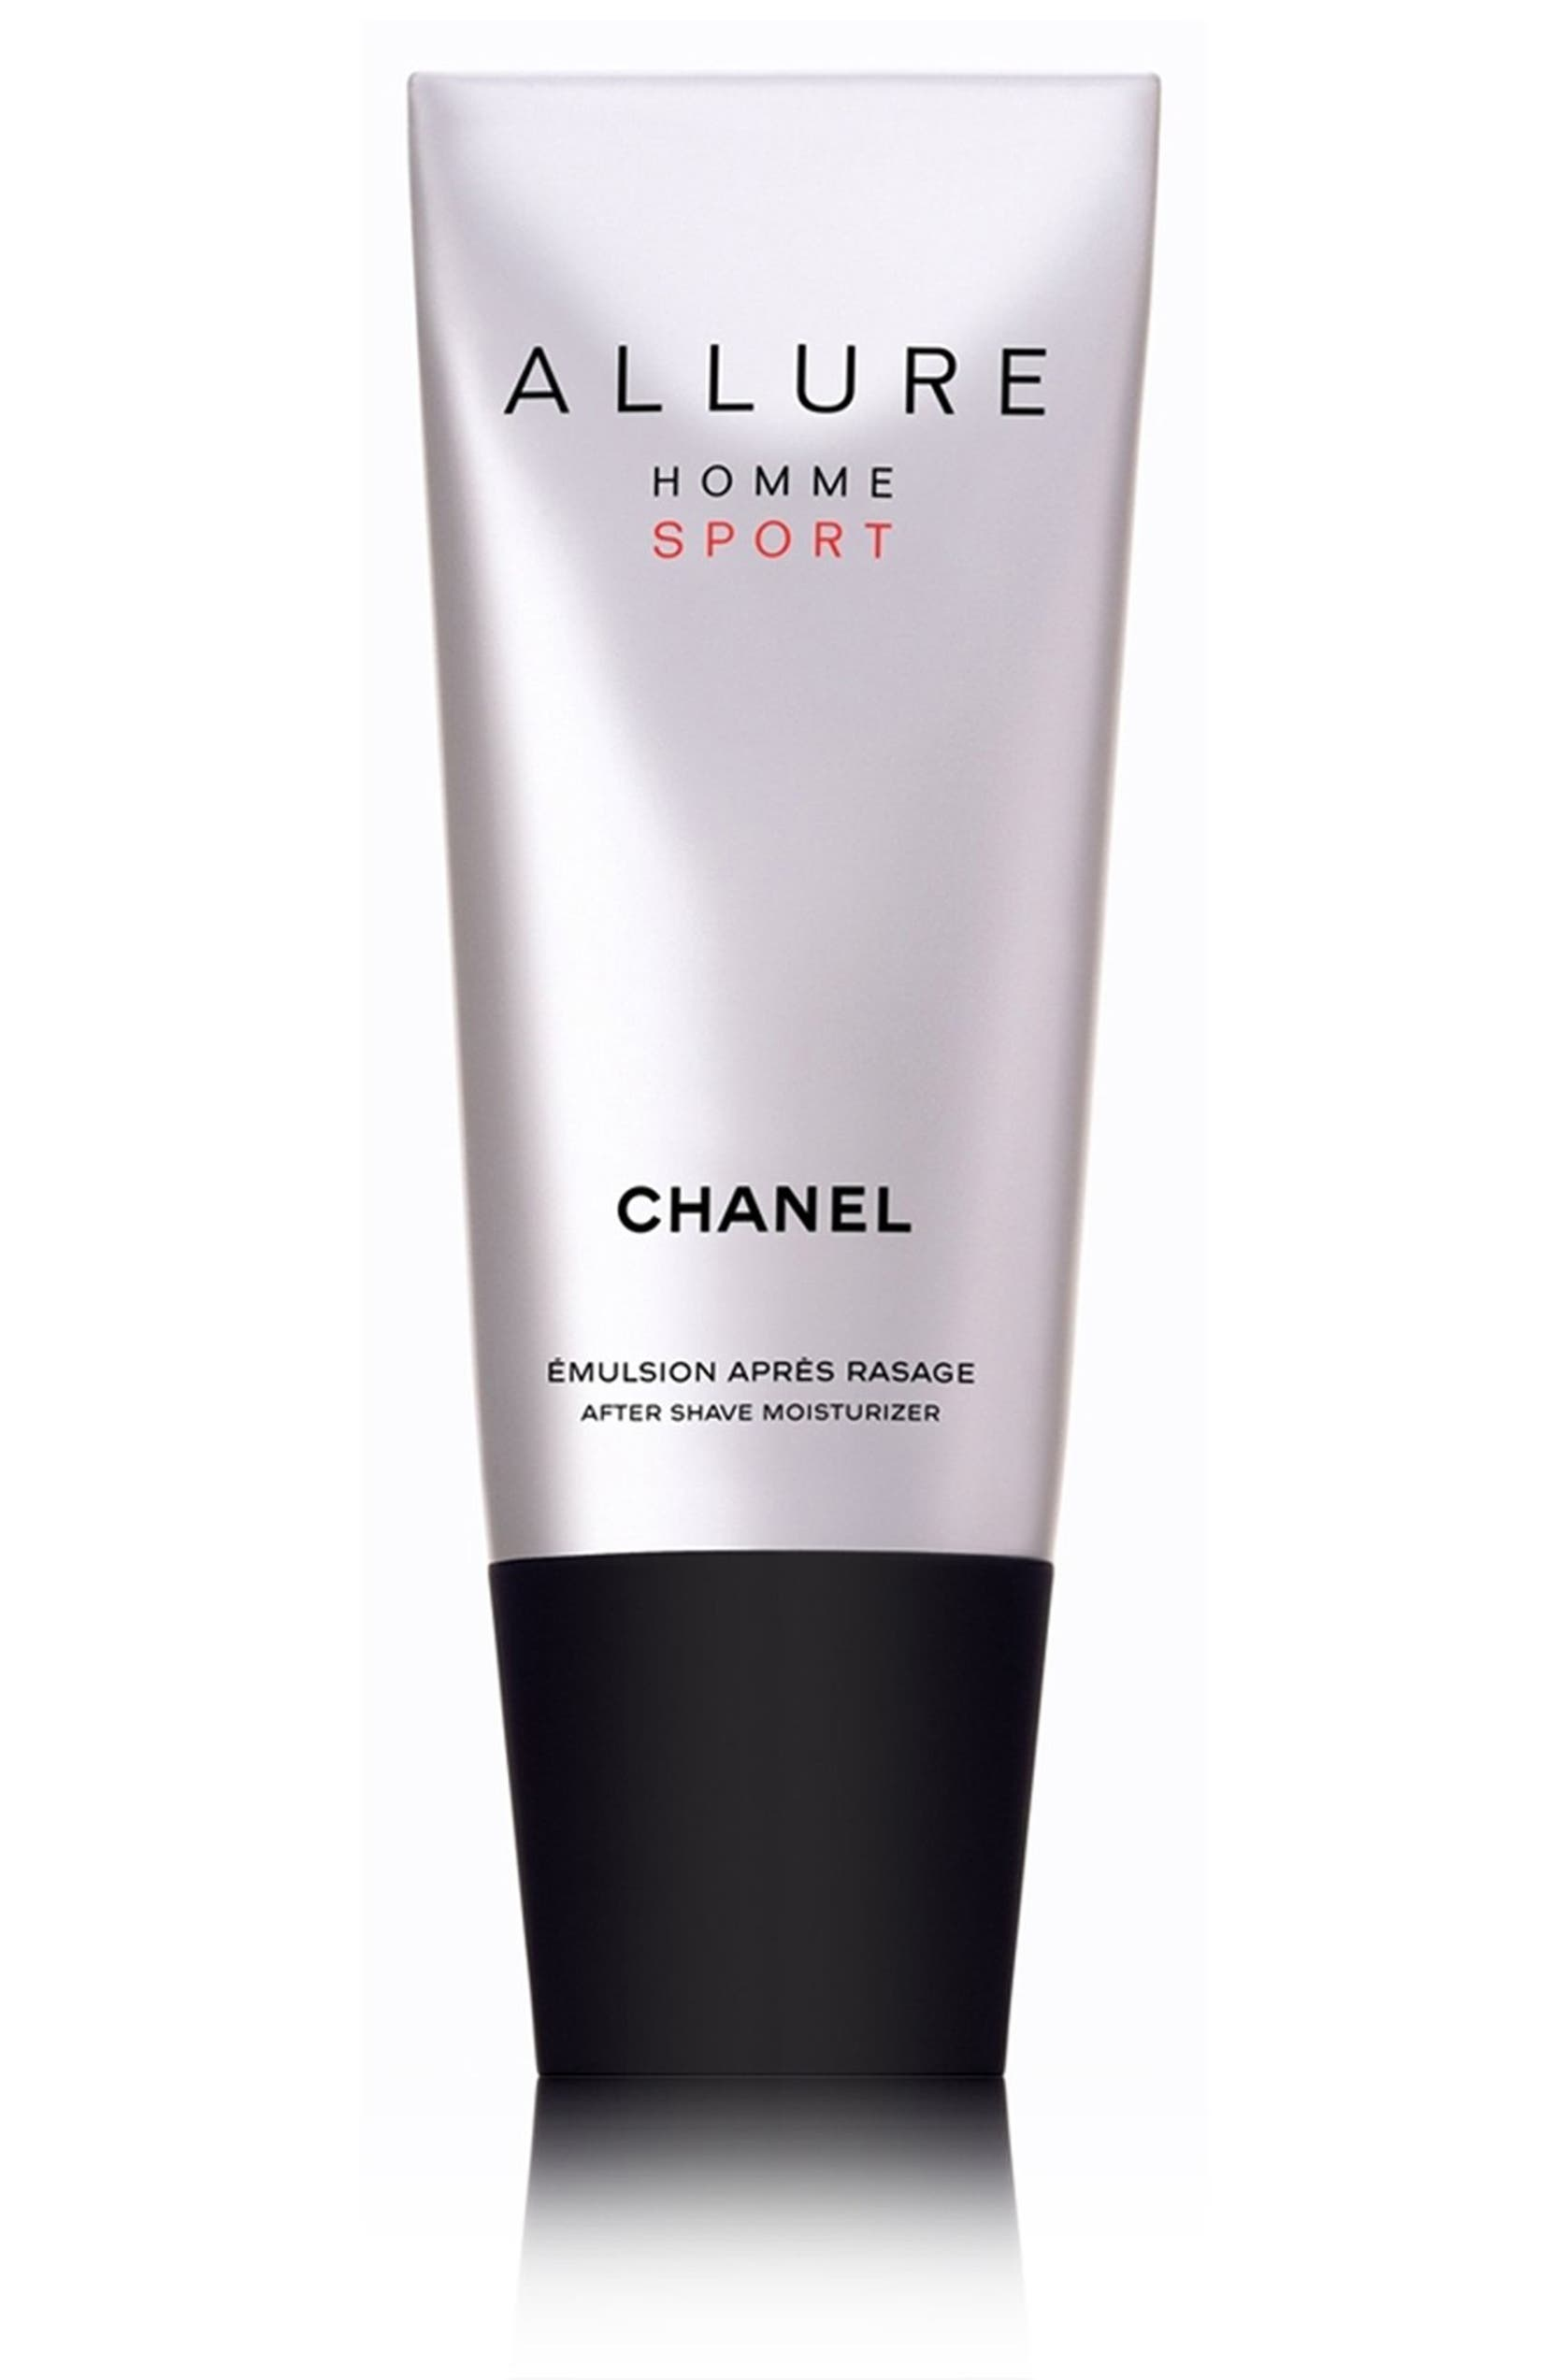 9f4e50e8ce78 CHANEL ALLURE HOMME SPORT After Shave Moisturizer | Nordstrom